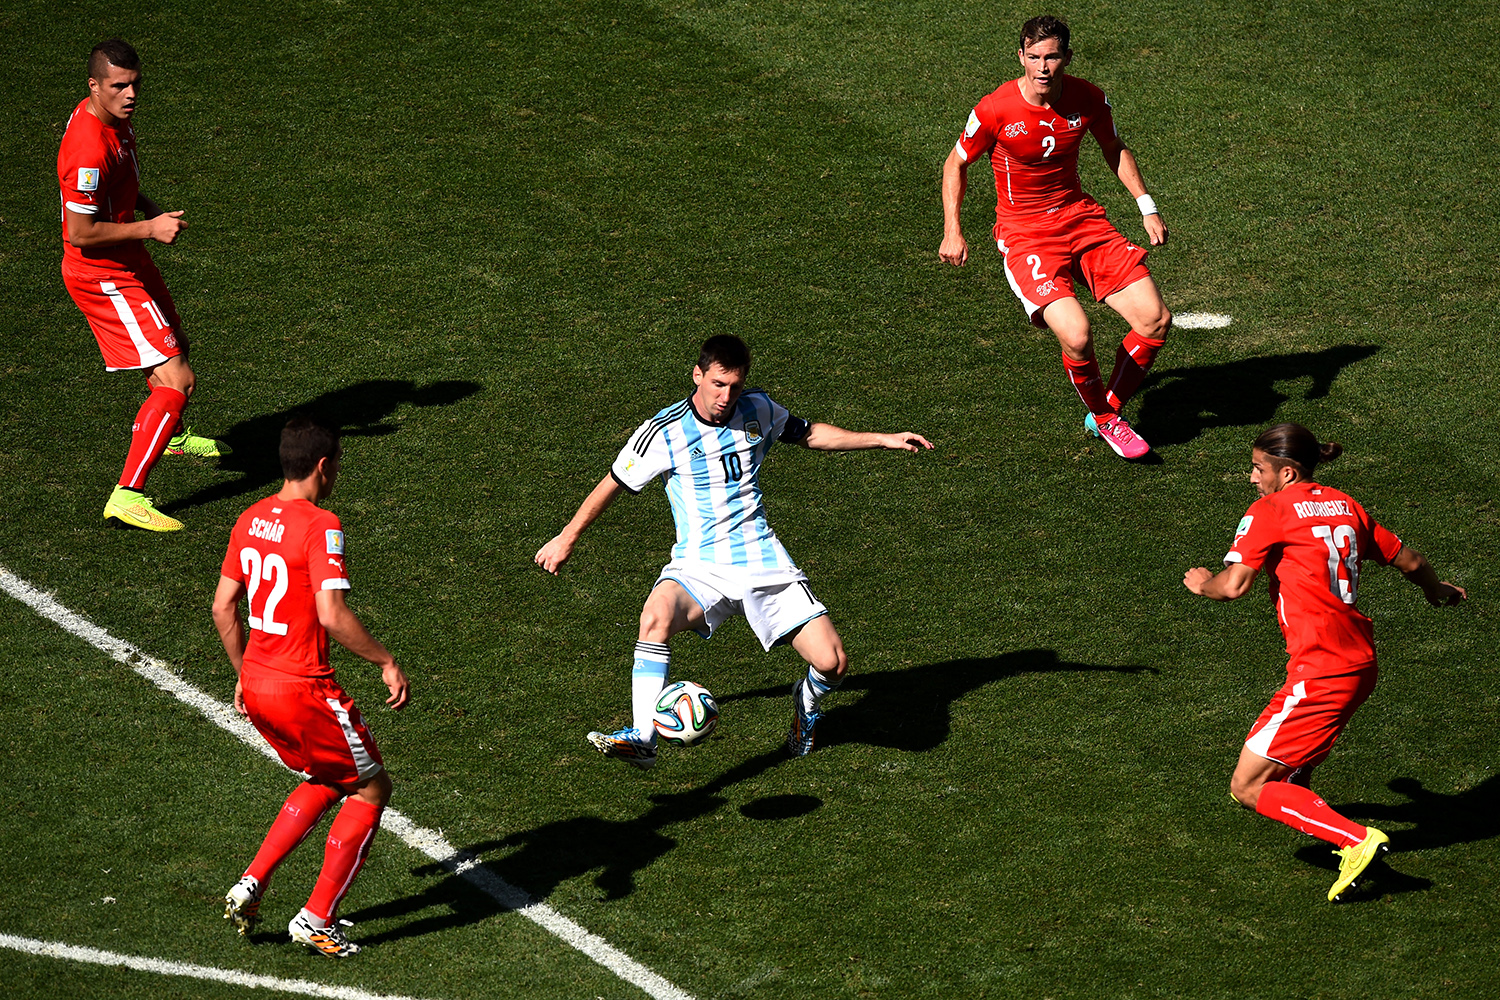 July 1, 2014. Lionel Messi of Argentina controls the ball against Josip Drmic (L), Fabian Schar (2nd L), Stephan Lichtsteiner (2nd R) and Ricardo Rodriguez of Switzerland during the 2014 FIFA World Cup Brazil Round of 16 match between Argentina and Switzerland at Arena de Sao Paulo in Sao Paulo, Brazil.